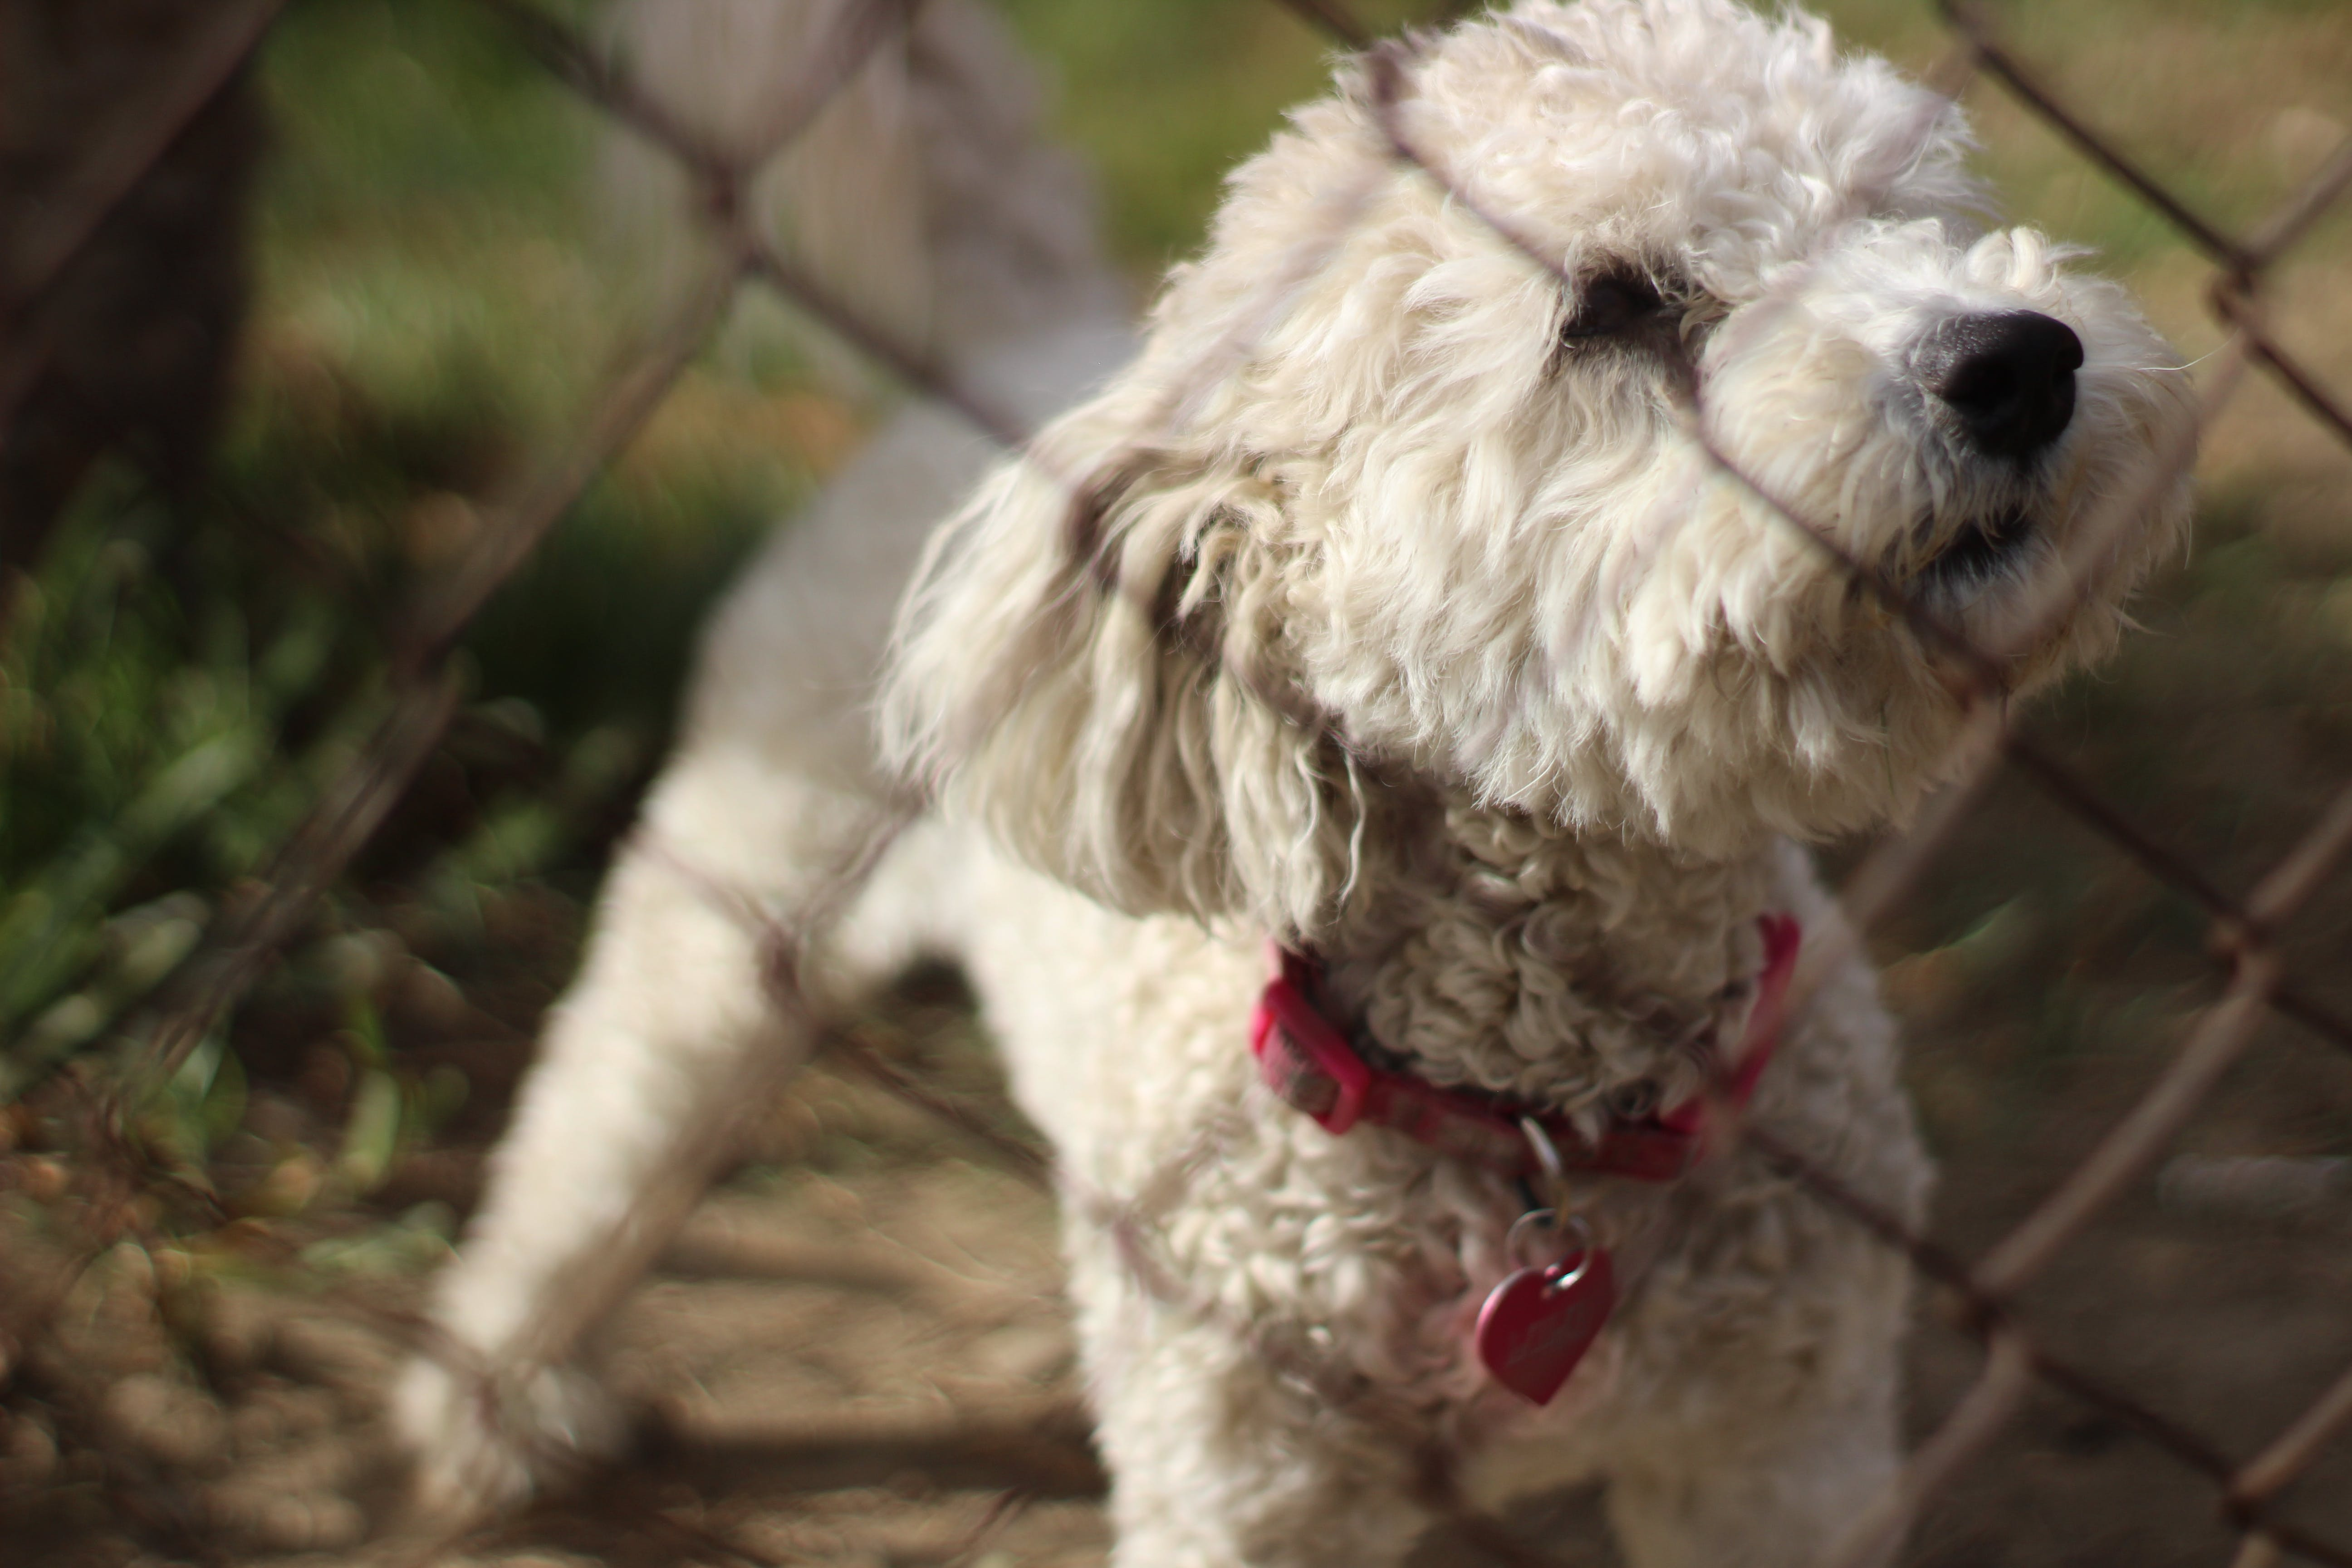 Selective Focus Photo of Adult White Toy Poodle in Front of Chain Link Fence